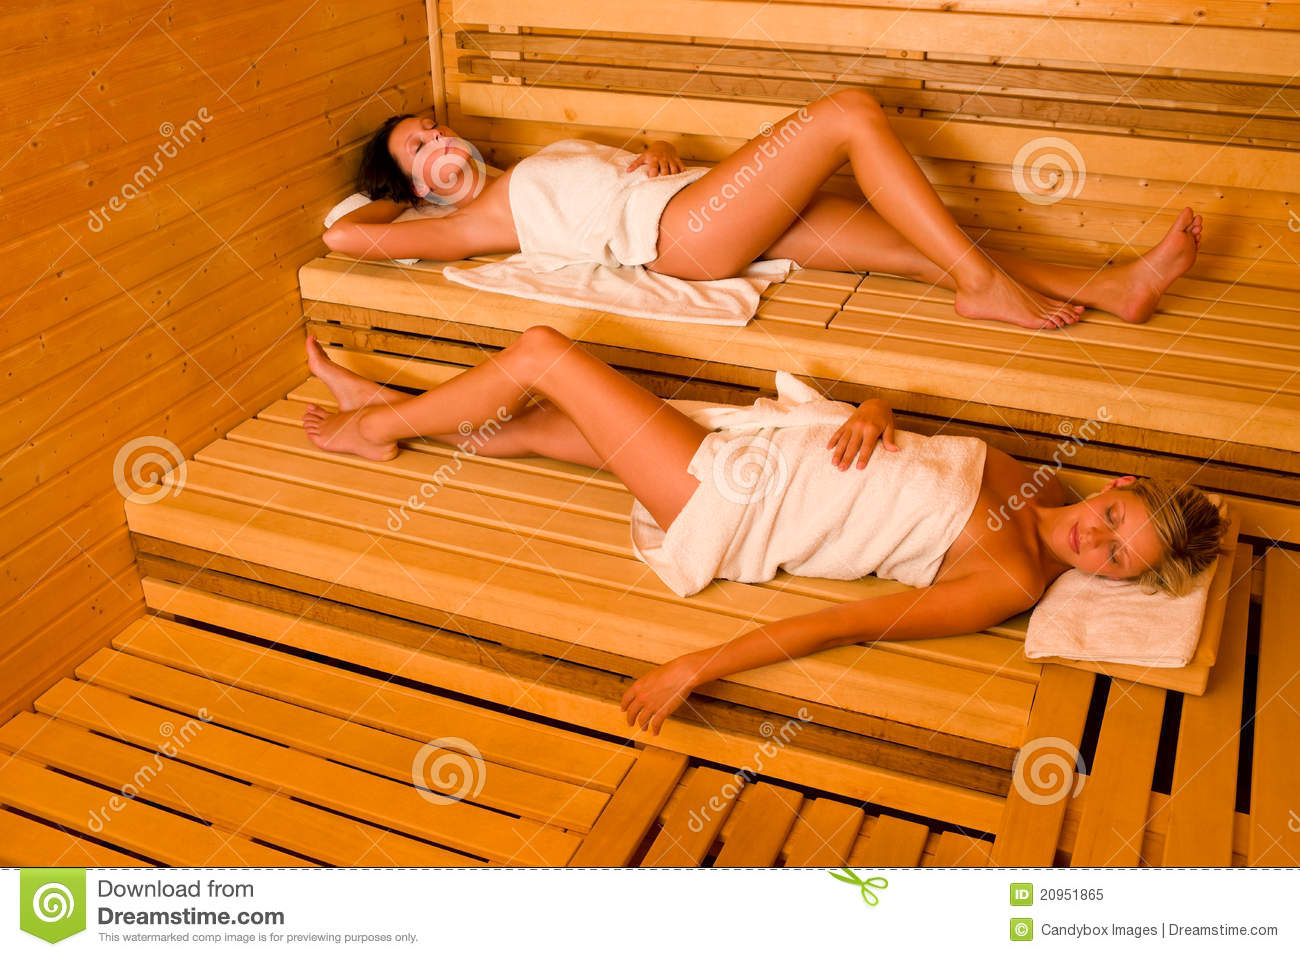 zwei frauen der sauna stock photos 364 images. Black Bedroom Furniture Sets. Home Design Ideas